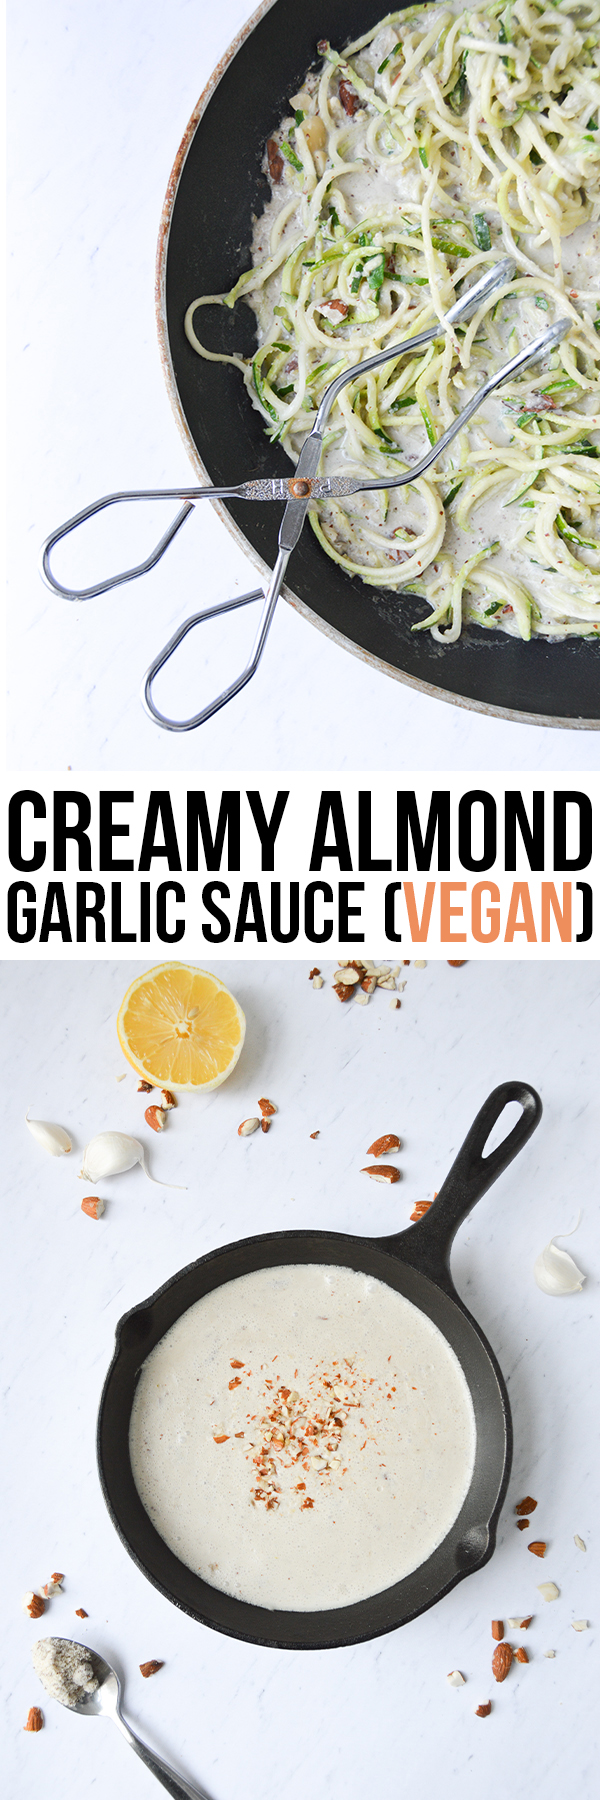 This creamy almond garlic sauce is dairy-free and delicious! Try it on pasta, zoodles, stir-fries and Buddha Bowls.